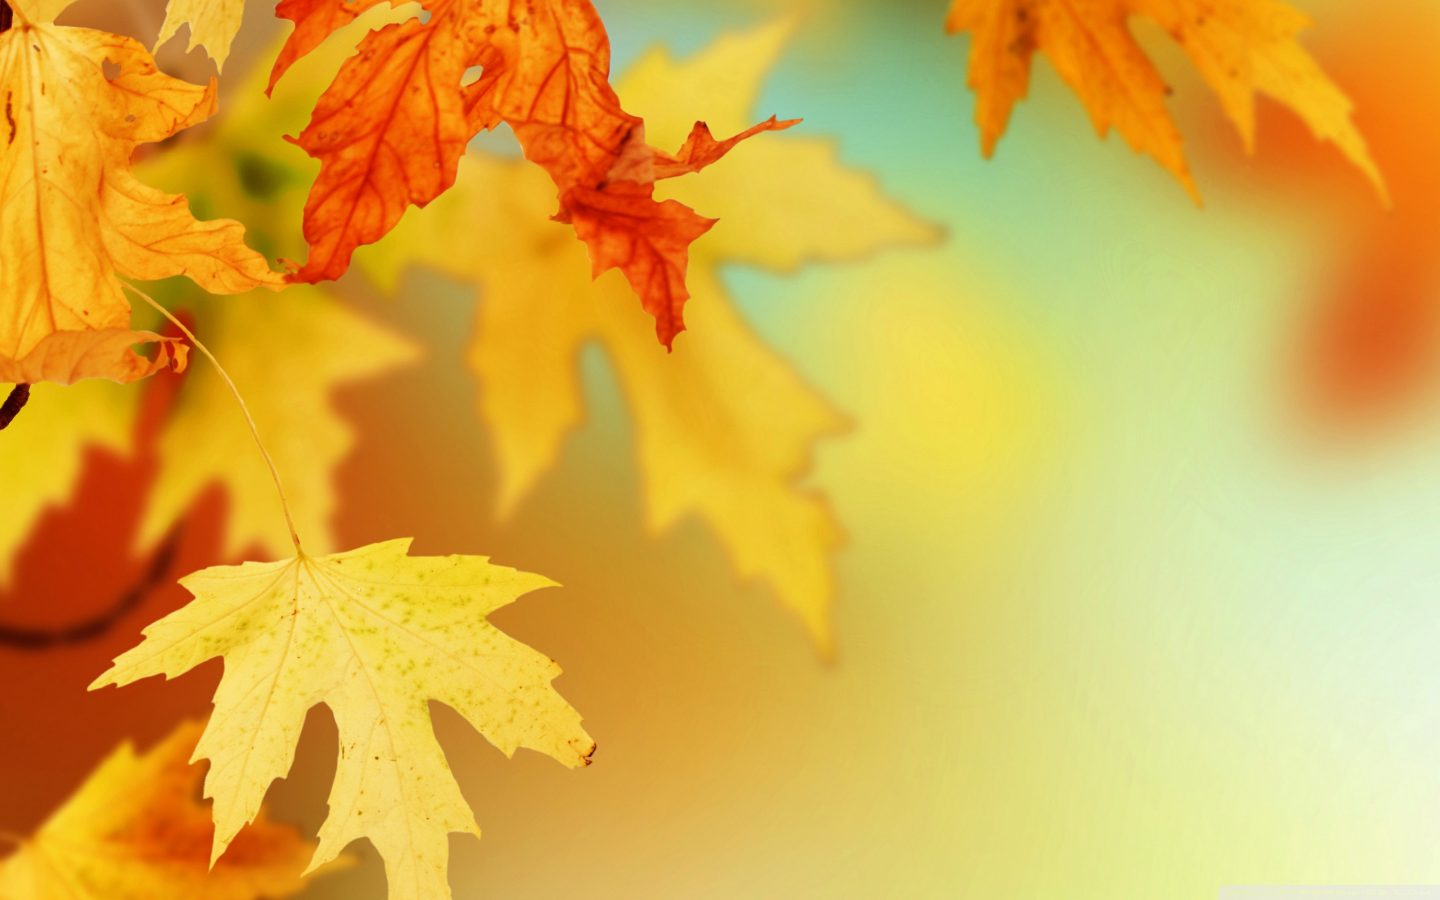 Fall Leaves Live Wallpaper Iphone Natural Background Hd